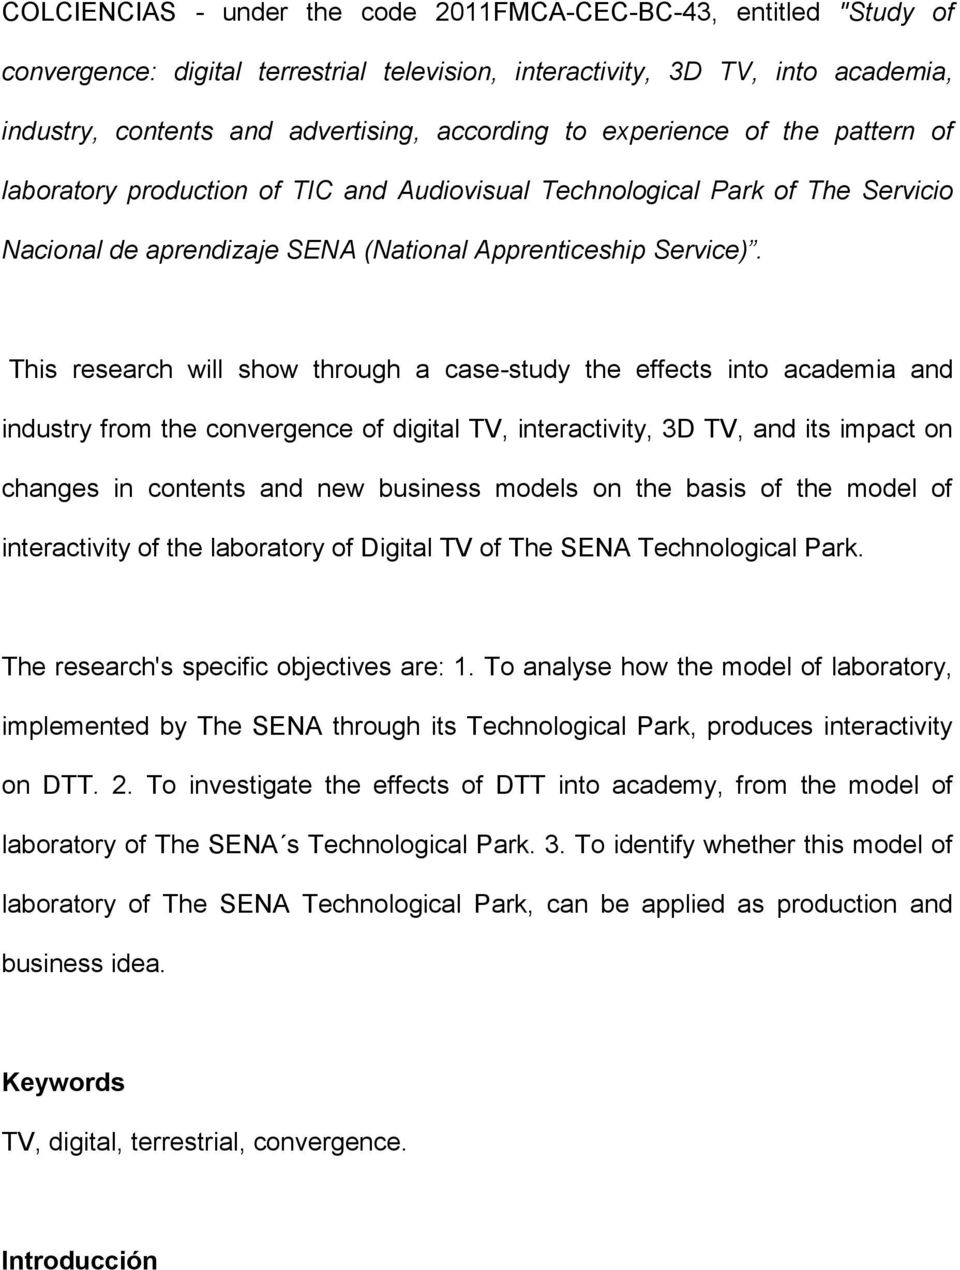 This research will show through a case-study the effects into academia and industry from the convergence of digital TV, interactivity, 3D TV, and its impact on changes in contents and new business